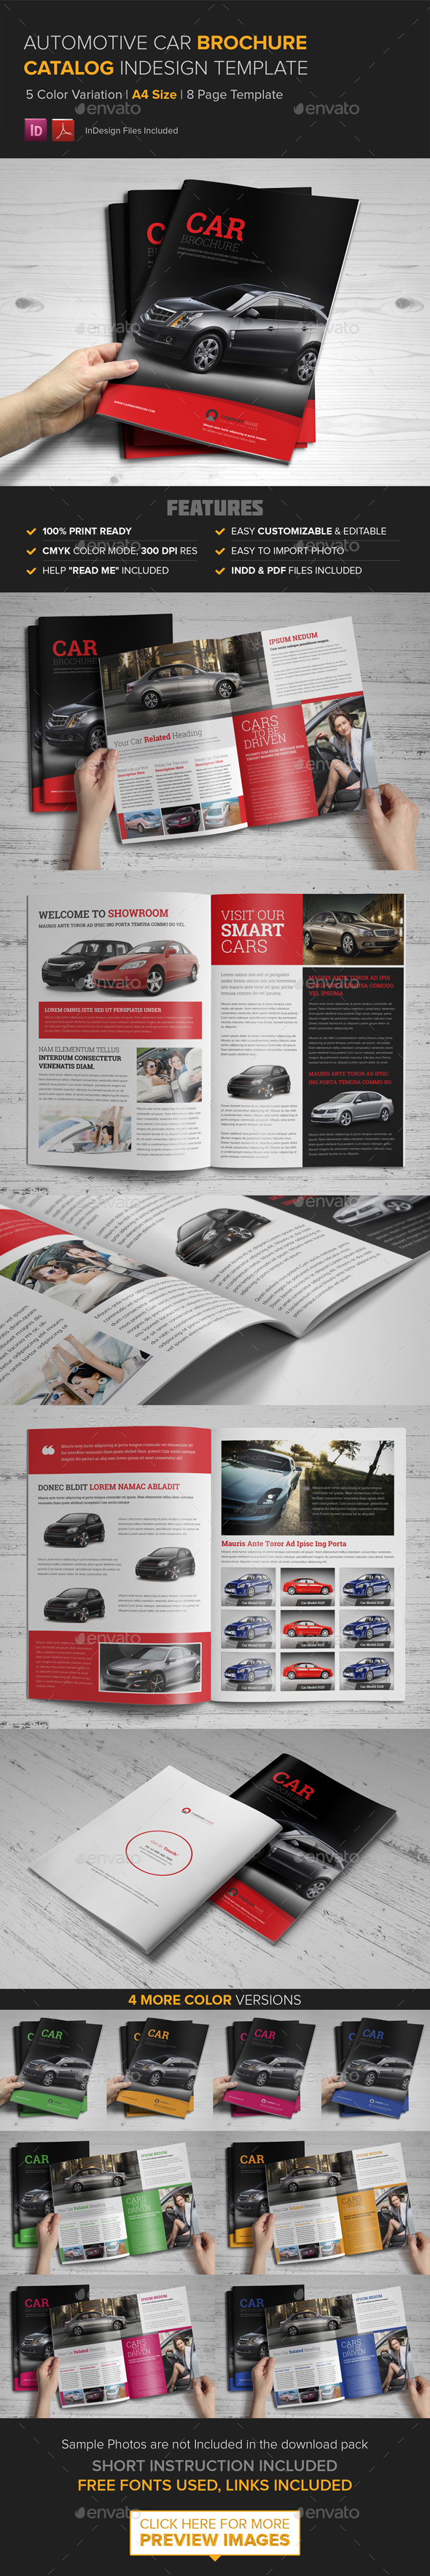 GraphicRiver Automotive Car Brochure Catalog InDesign Template 9530568